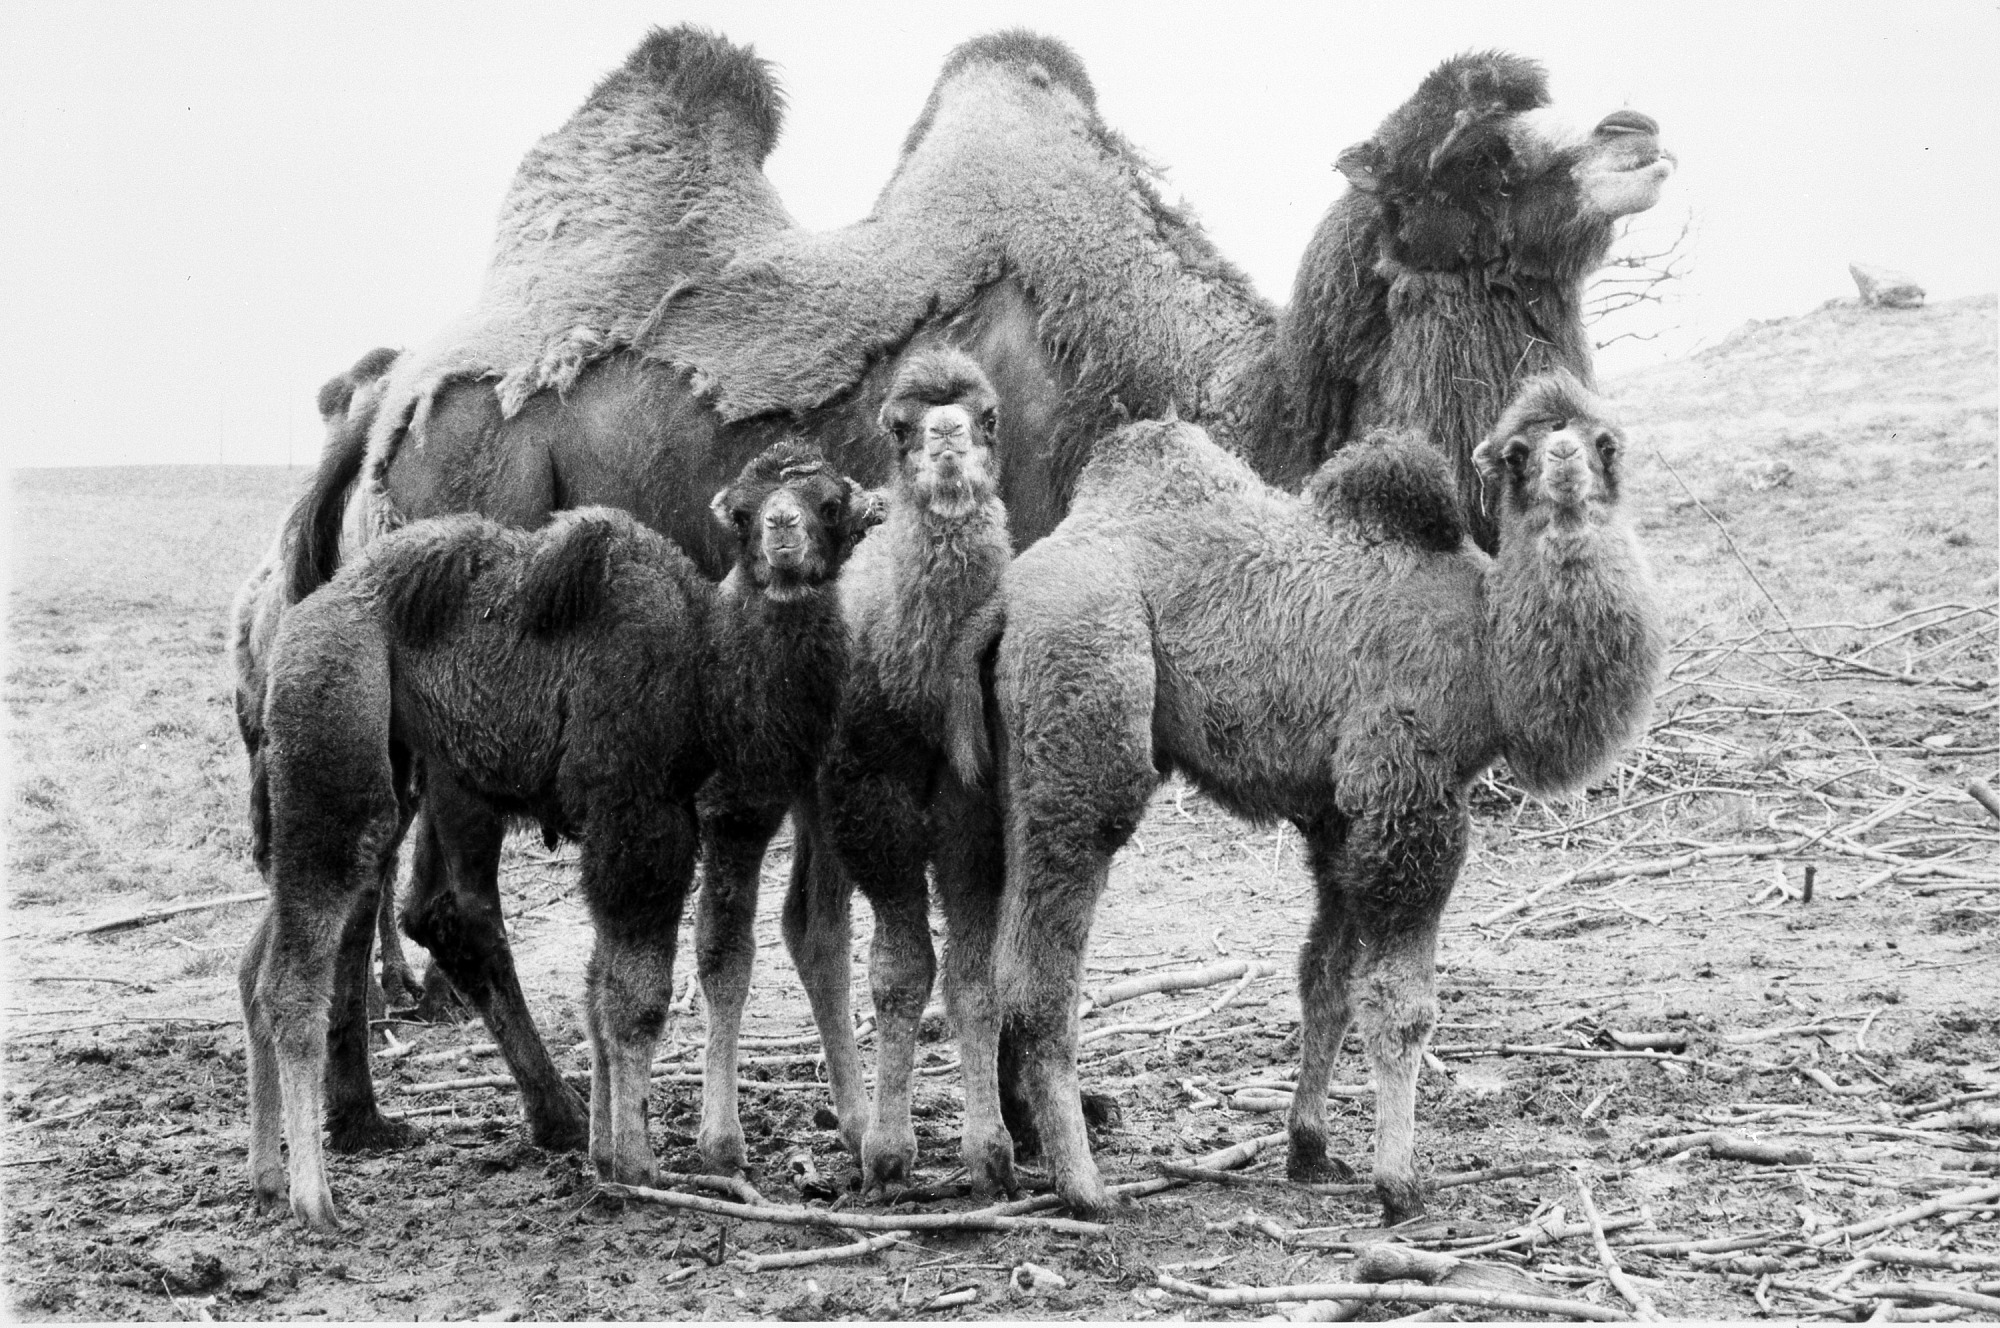 Bactrian Camels at CRC, by Unknown, 1980, Smithsonian Archives - History Div, 96-1017.